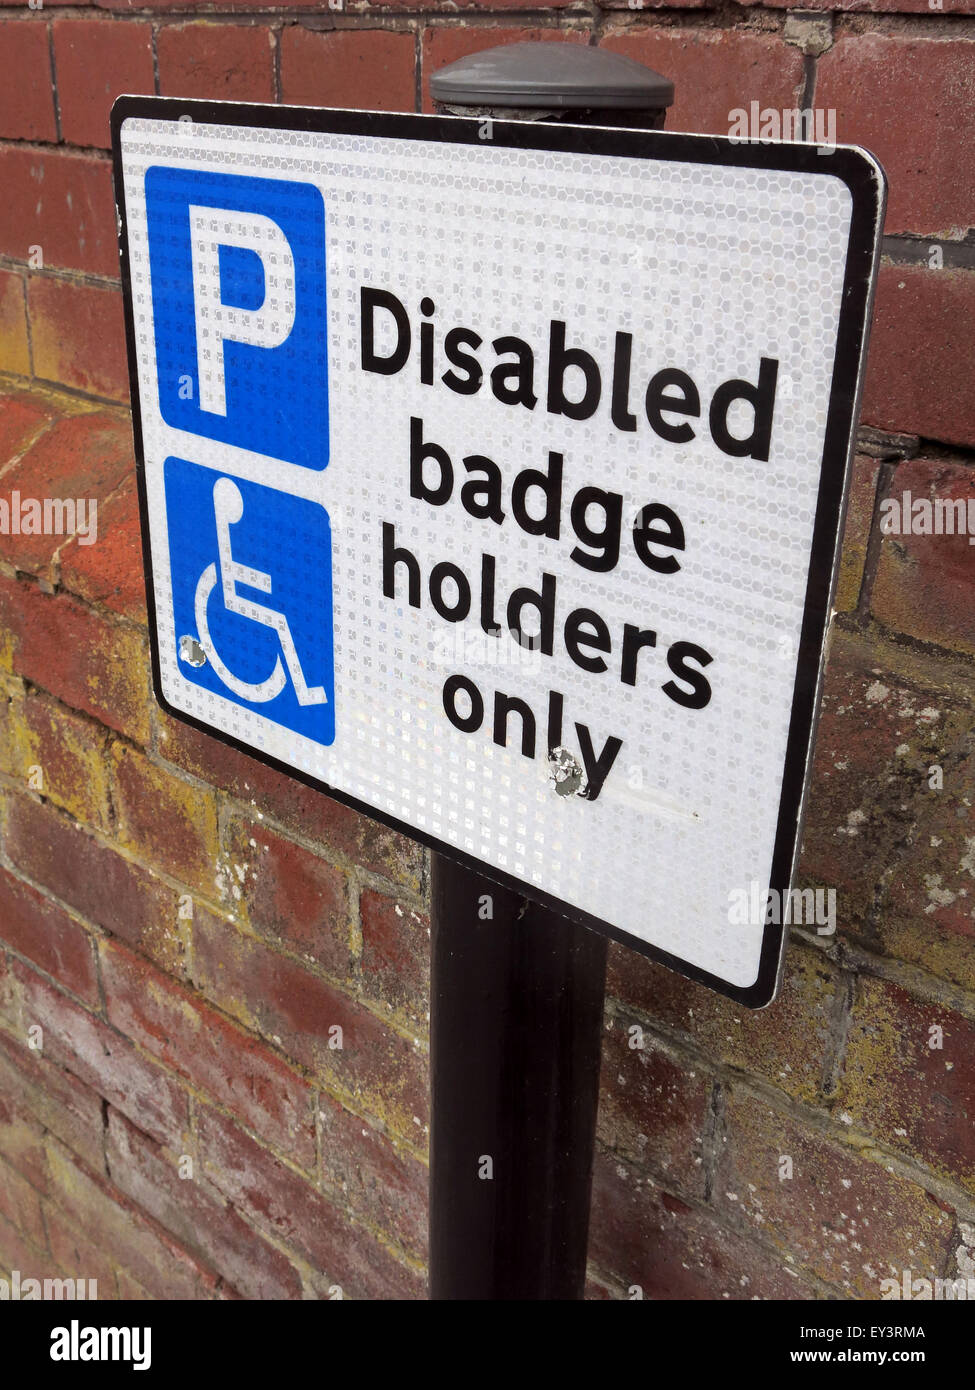 Disabled Badge holders Only sign - Stock Image